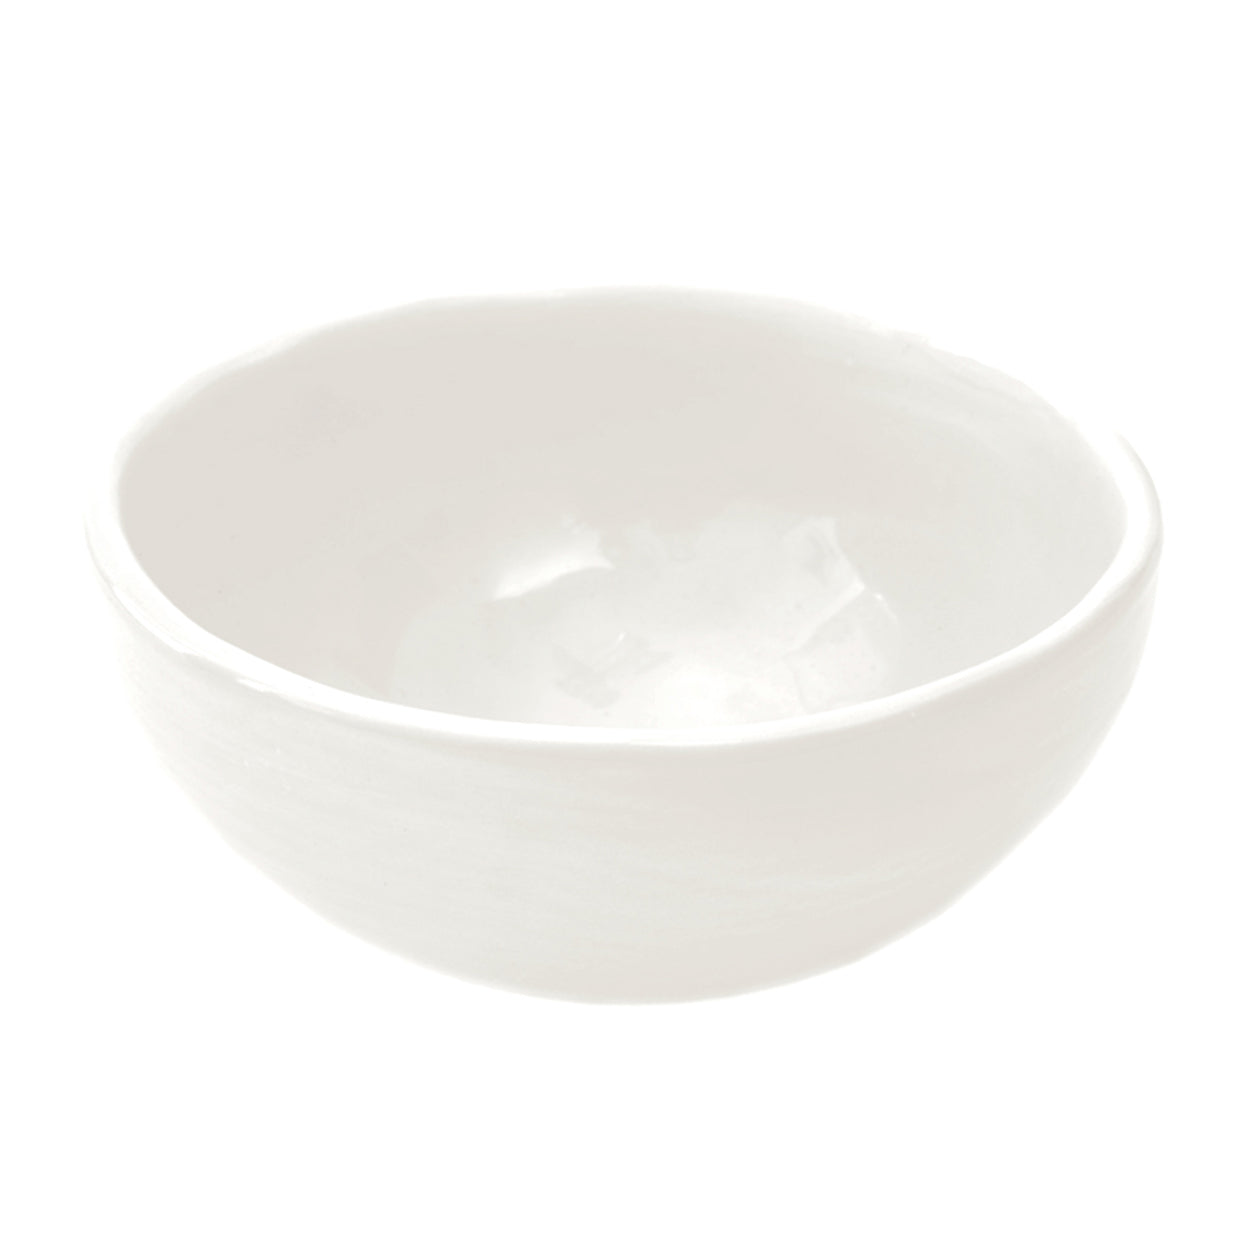 HONEYMOON BOWL WHITE GLOSS